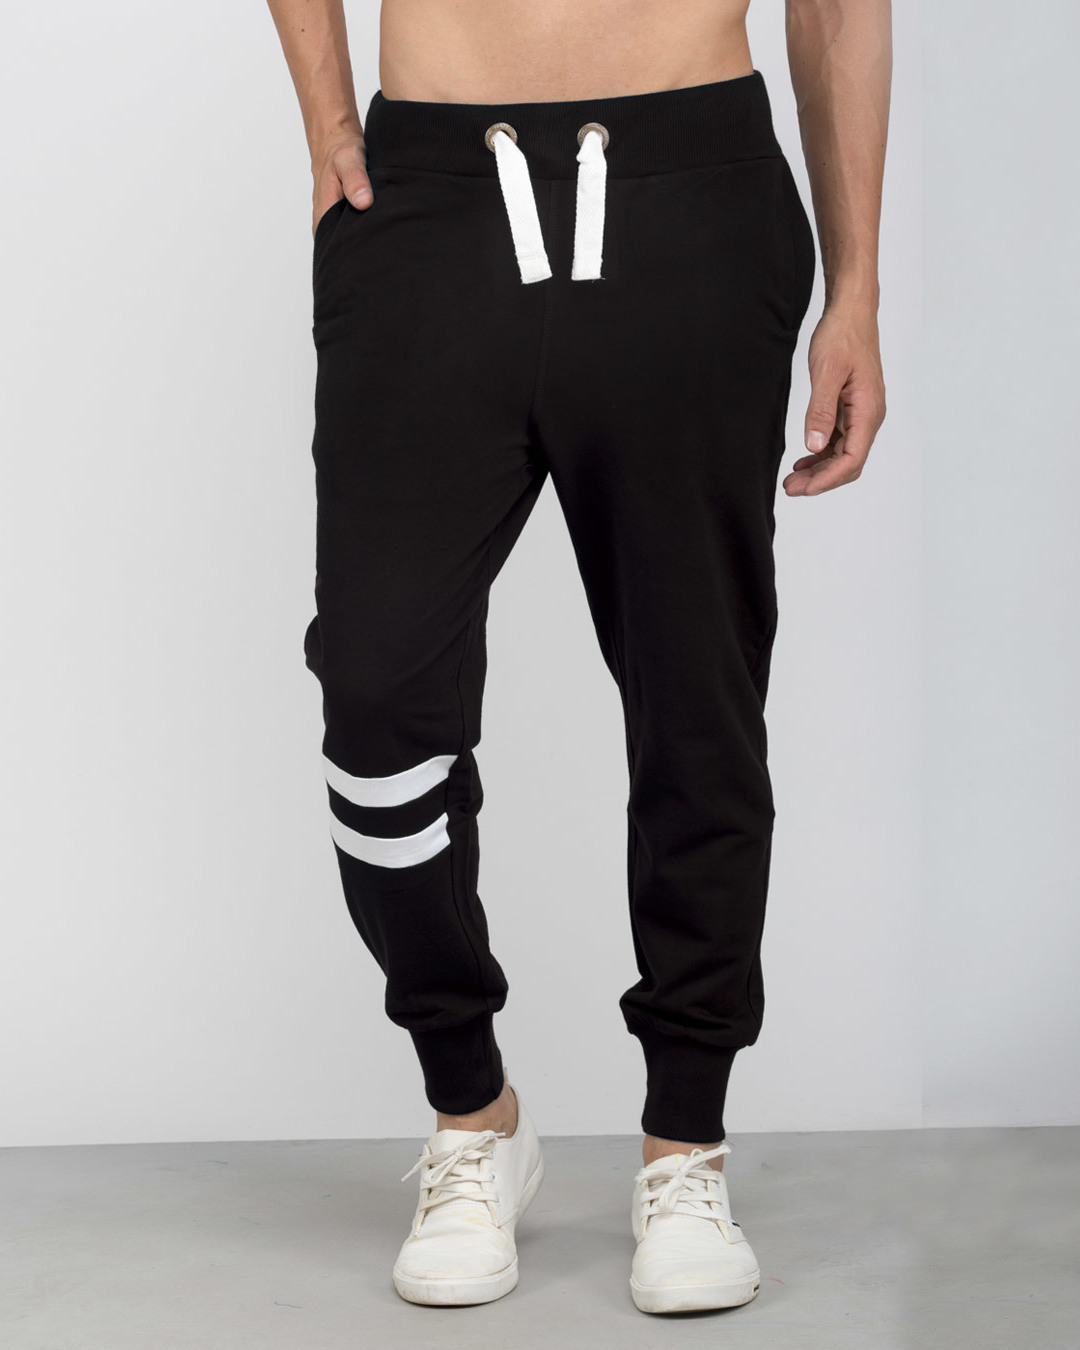 Buy jogger online in india at comfoisinsi.tk Choose from huge range of mens joggers, track pants, jogger pants collection online starting at Rs Be the trendsetter with jogger pants the perfect blend of comfort and style. Free Shipping, Easy Returns & COD options available!